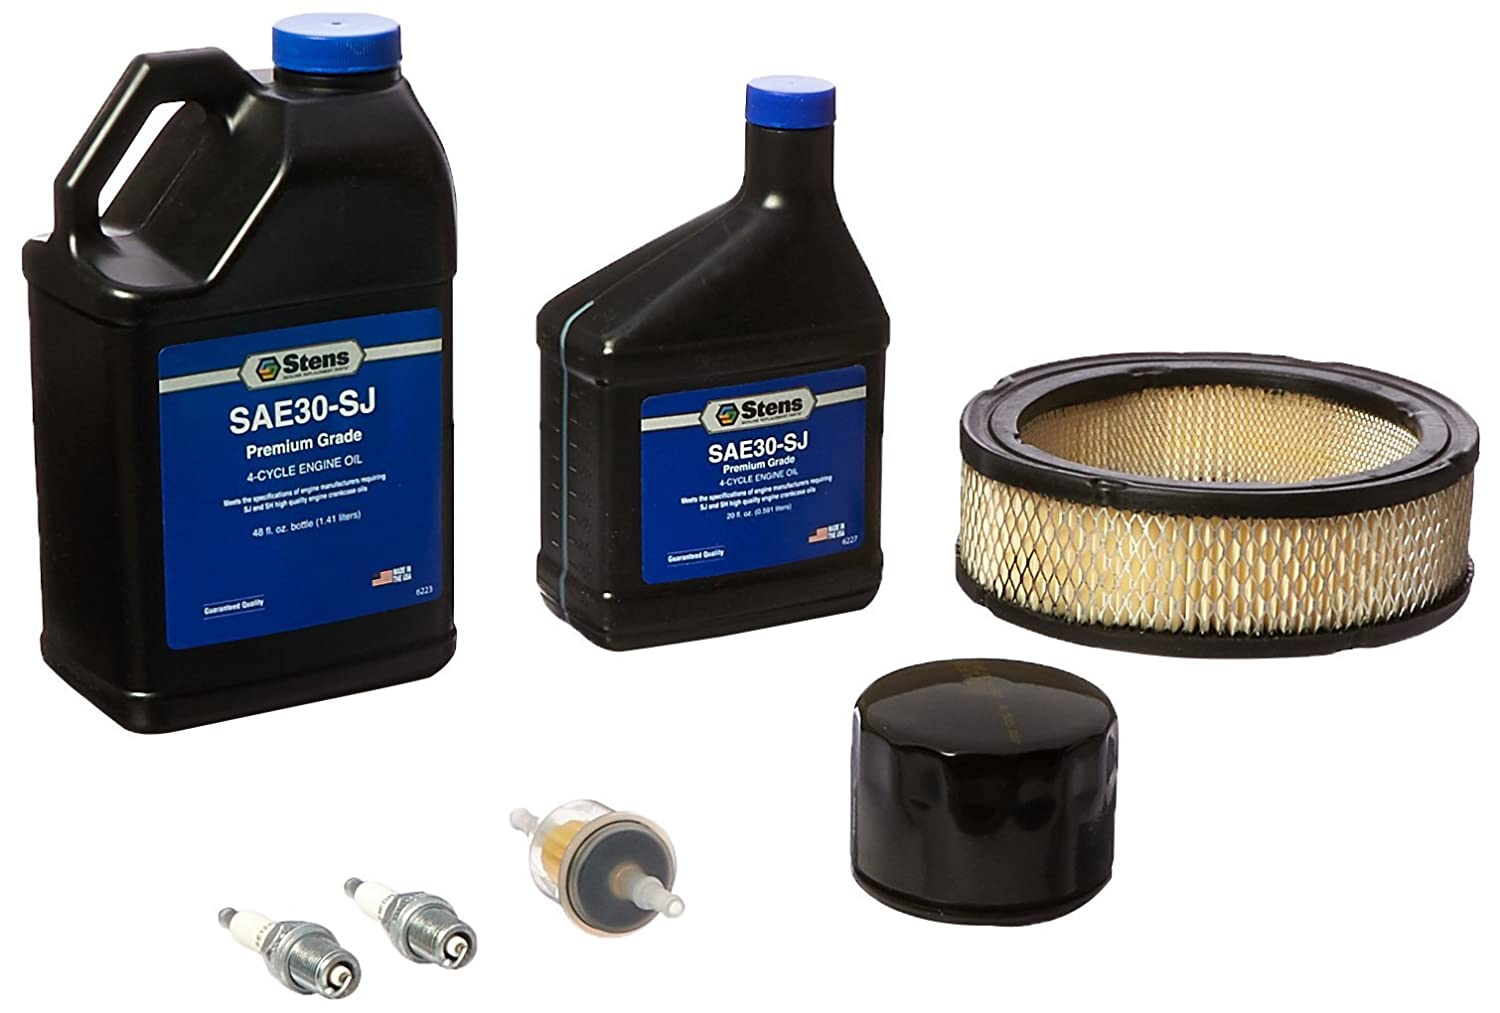 Stens 785 525 Engine Tune Up Maintenance Kit For Vanguard Fuel Filter Briggs Stratton 5119b V Twin 125 Hp Through 21 Lawn Mower Air Filters